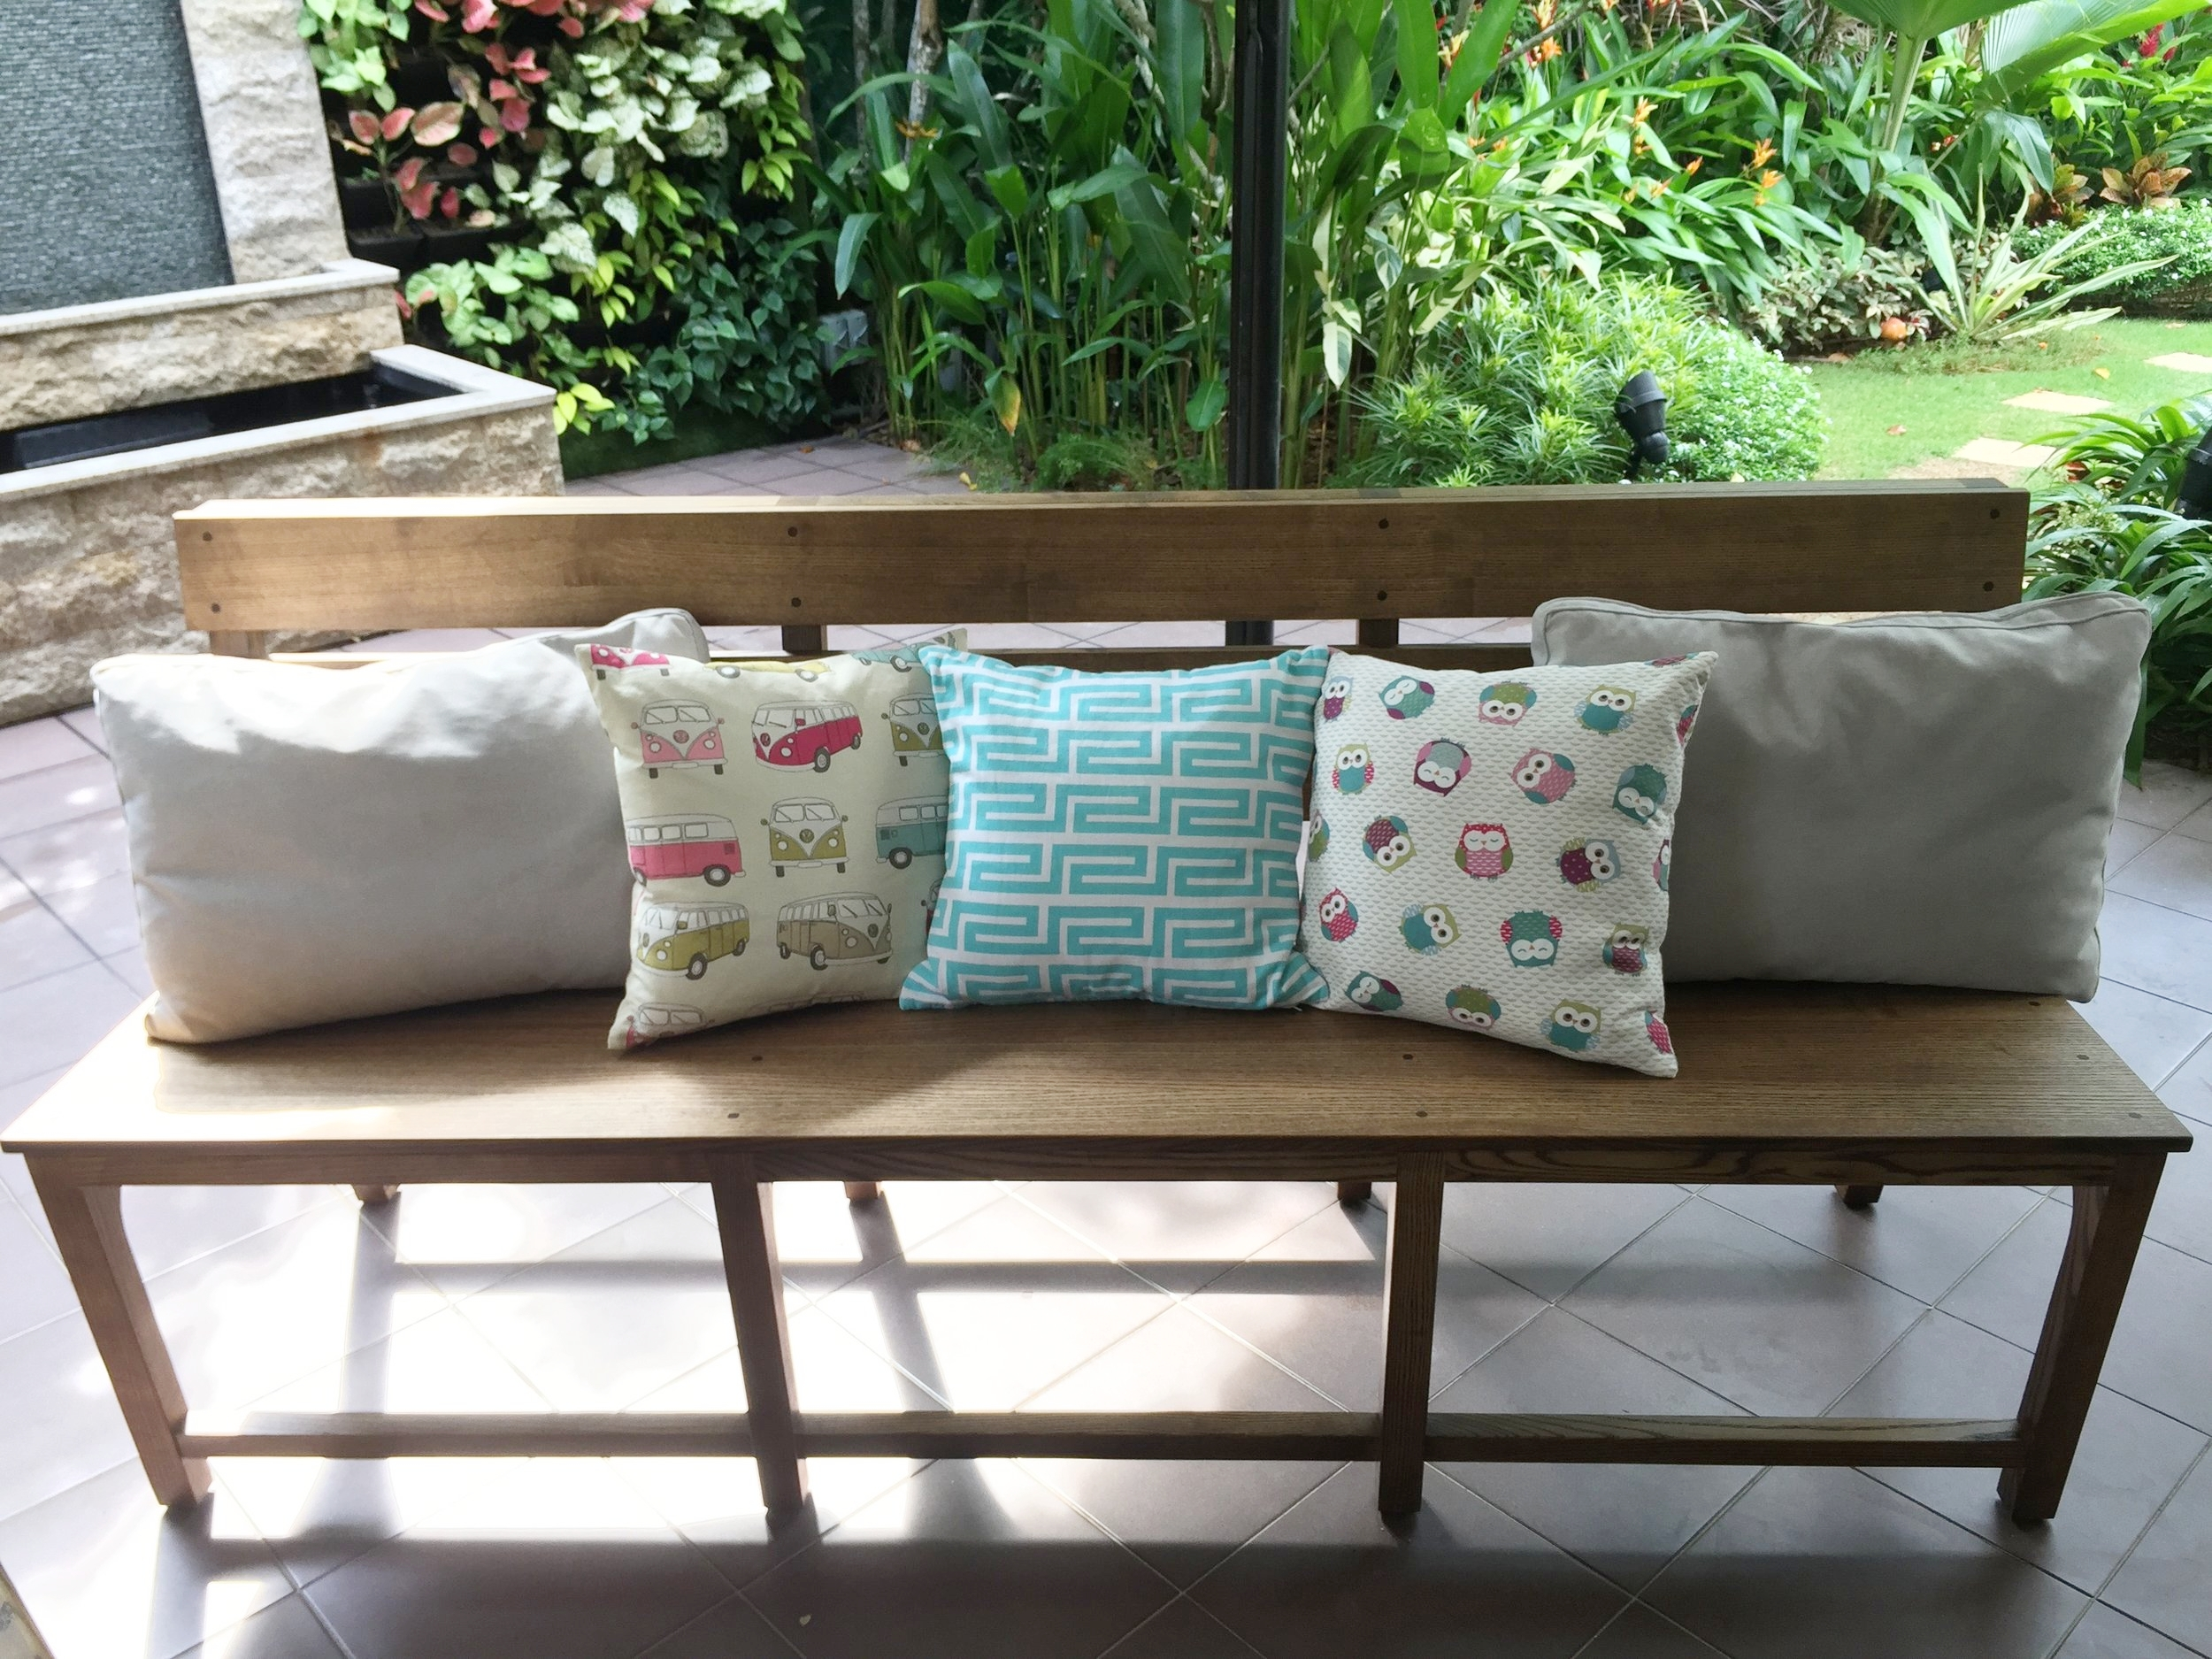 Spice up solid wood benches with colourful cushions and throws.